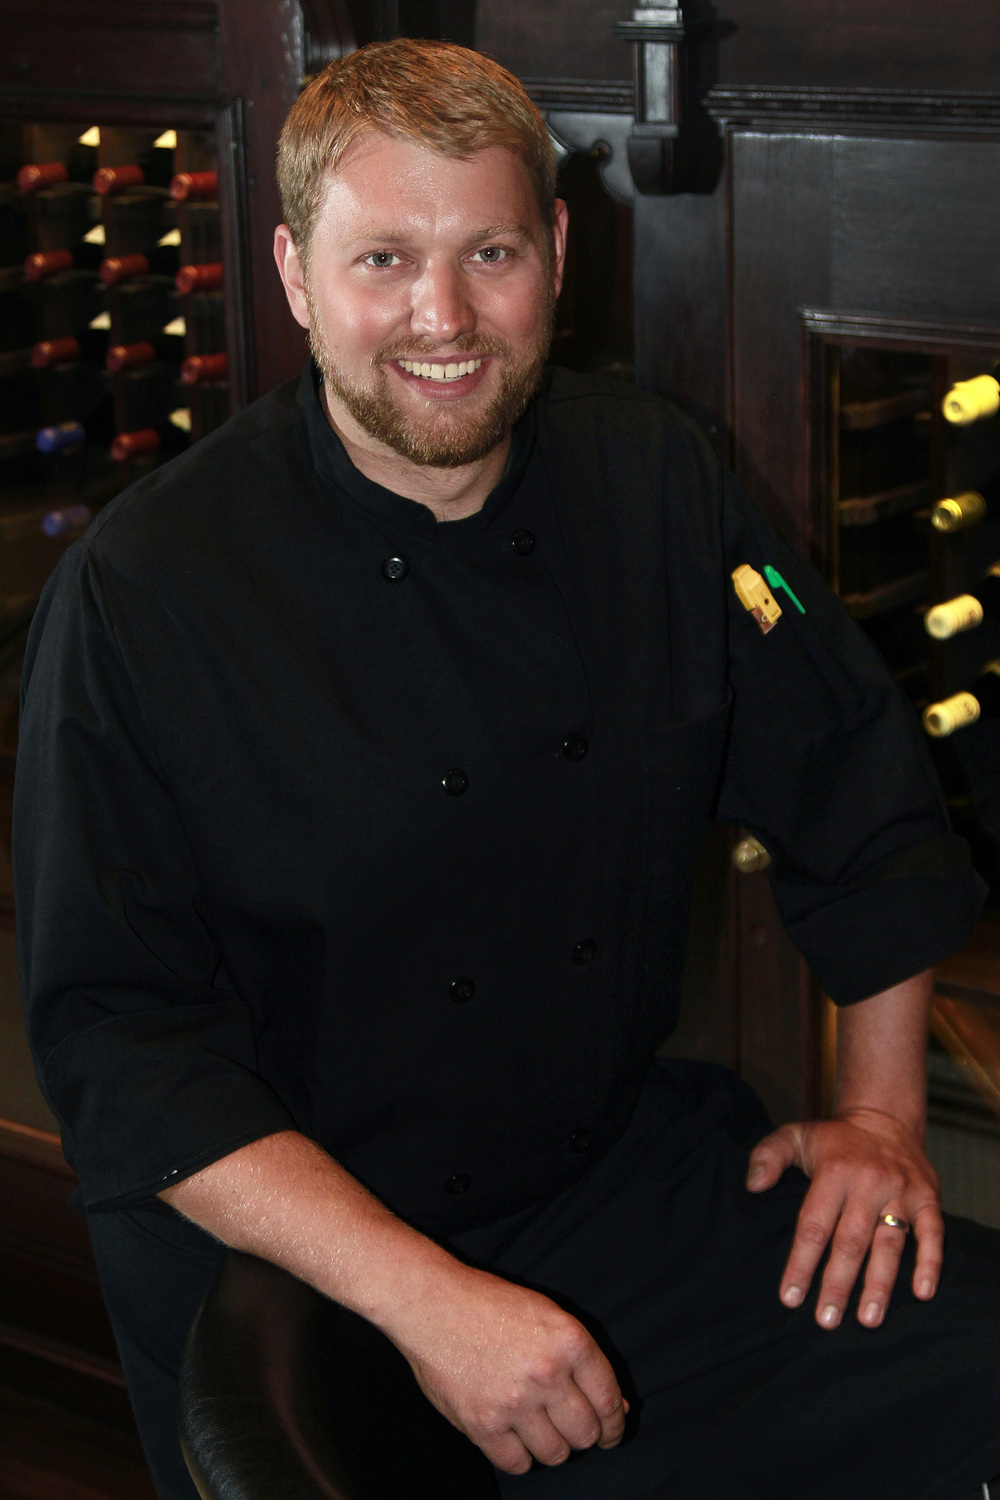 Mason Zeglen, Executive Chef